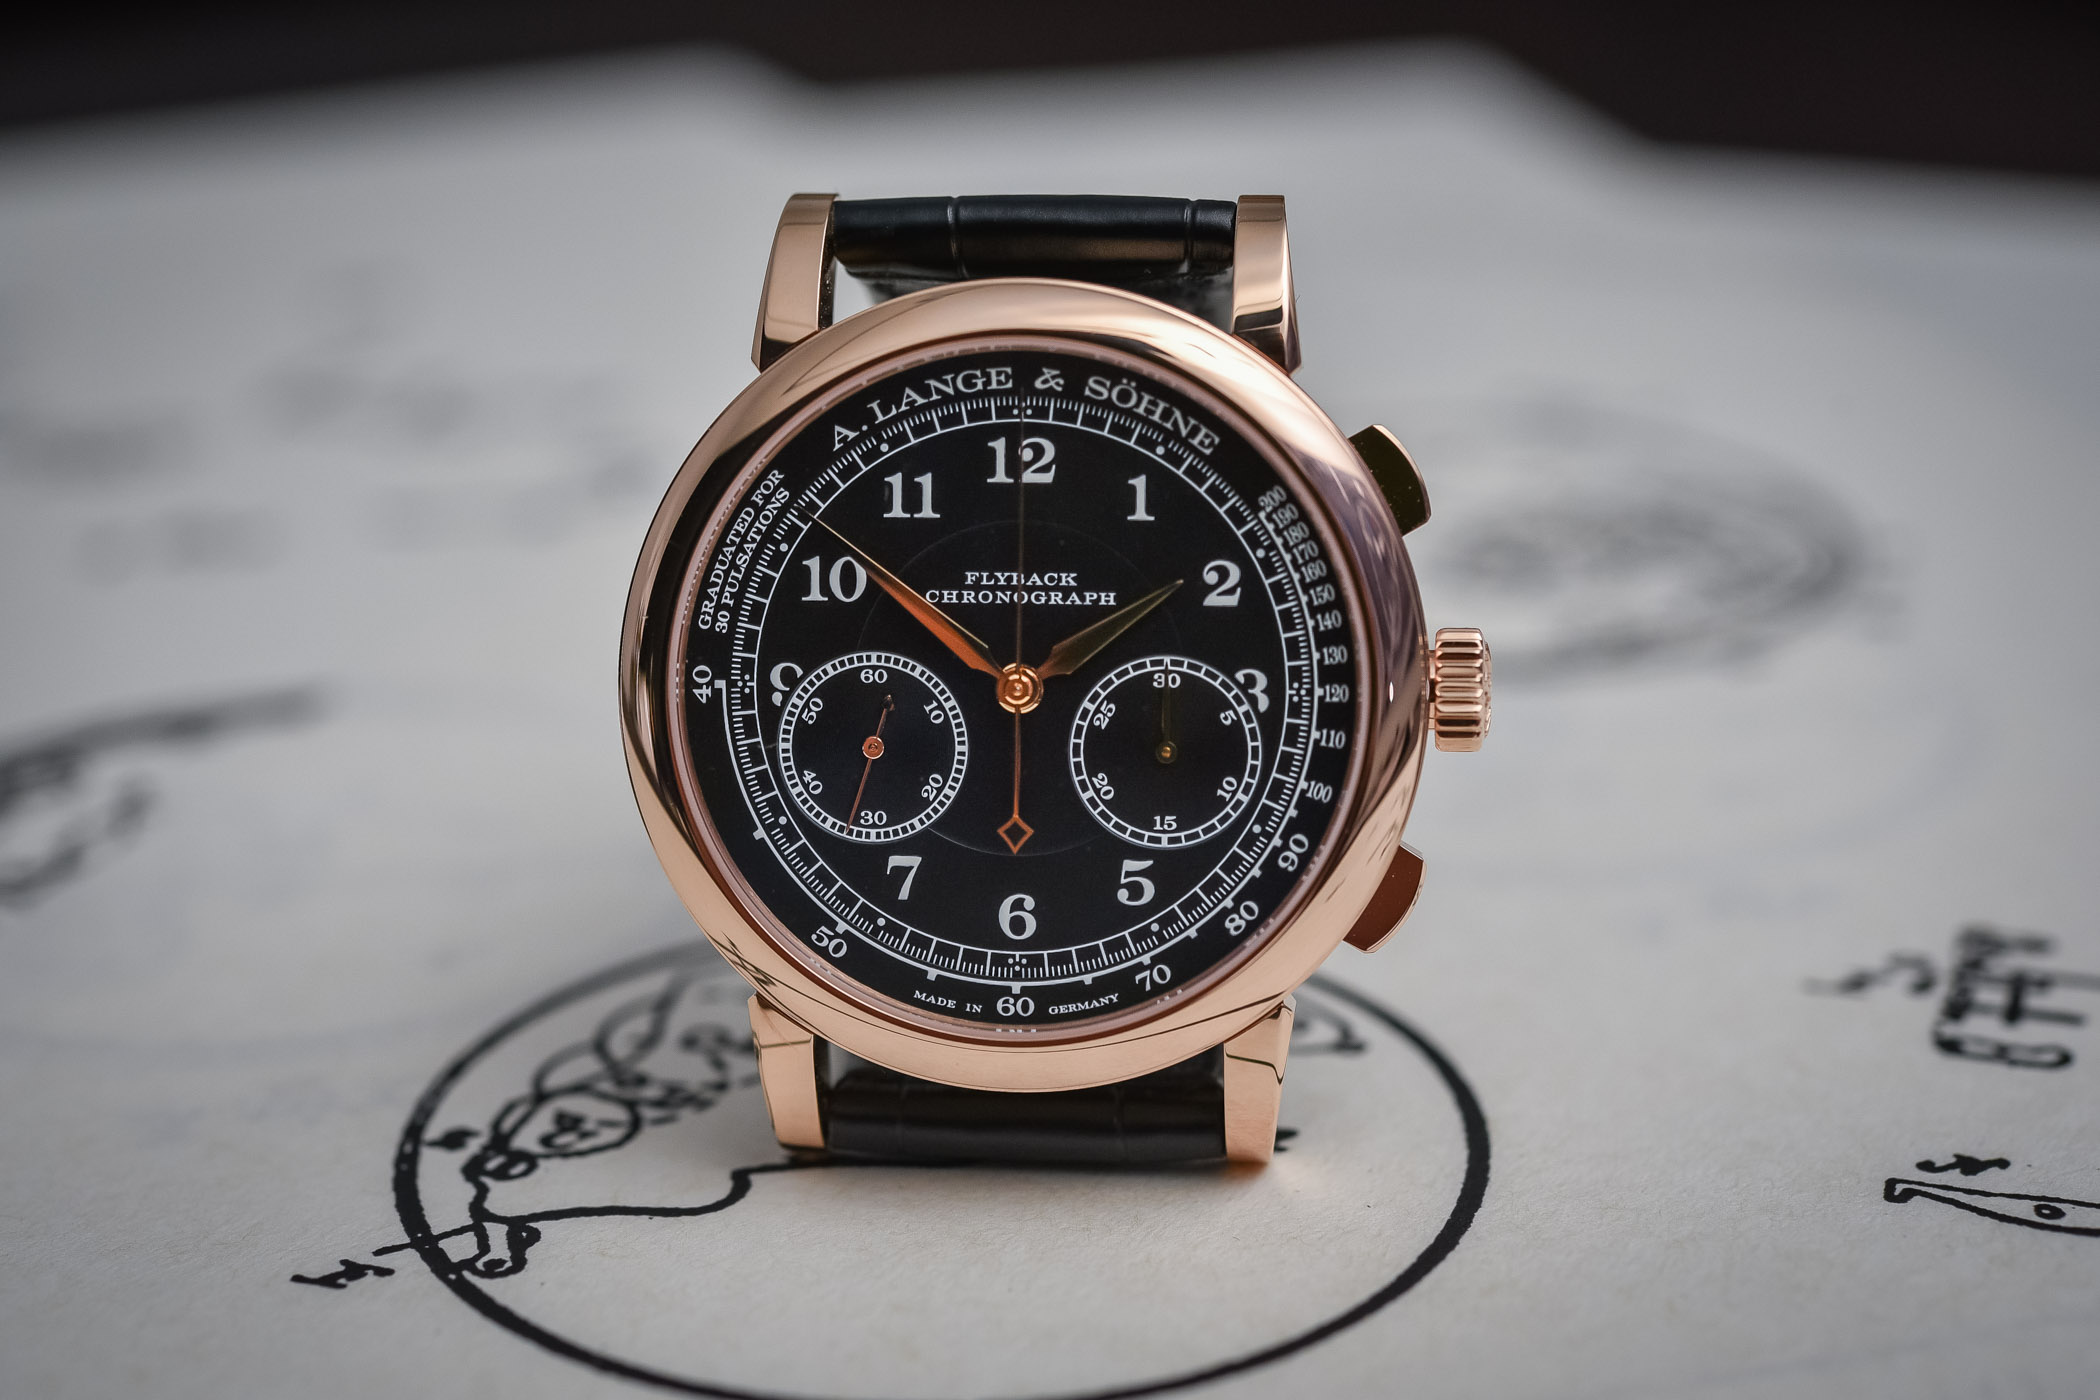 The Battle of High-End Chronographs Part 2 – A. Lange & Söhne 1815 Chronograph